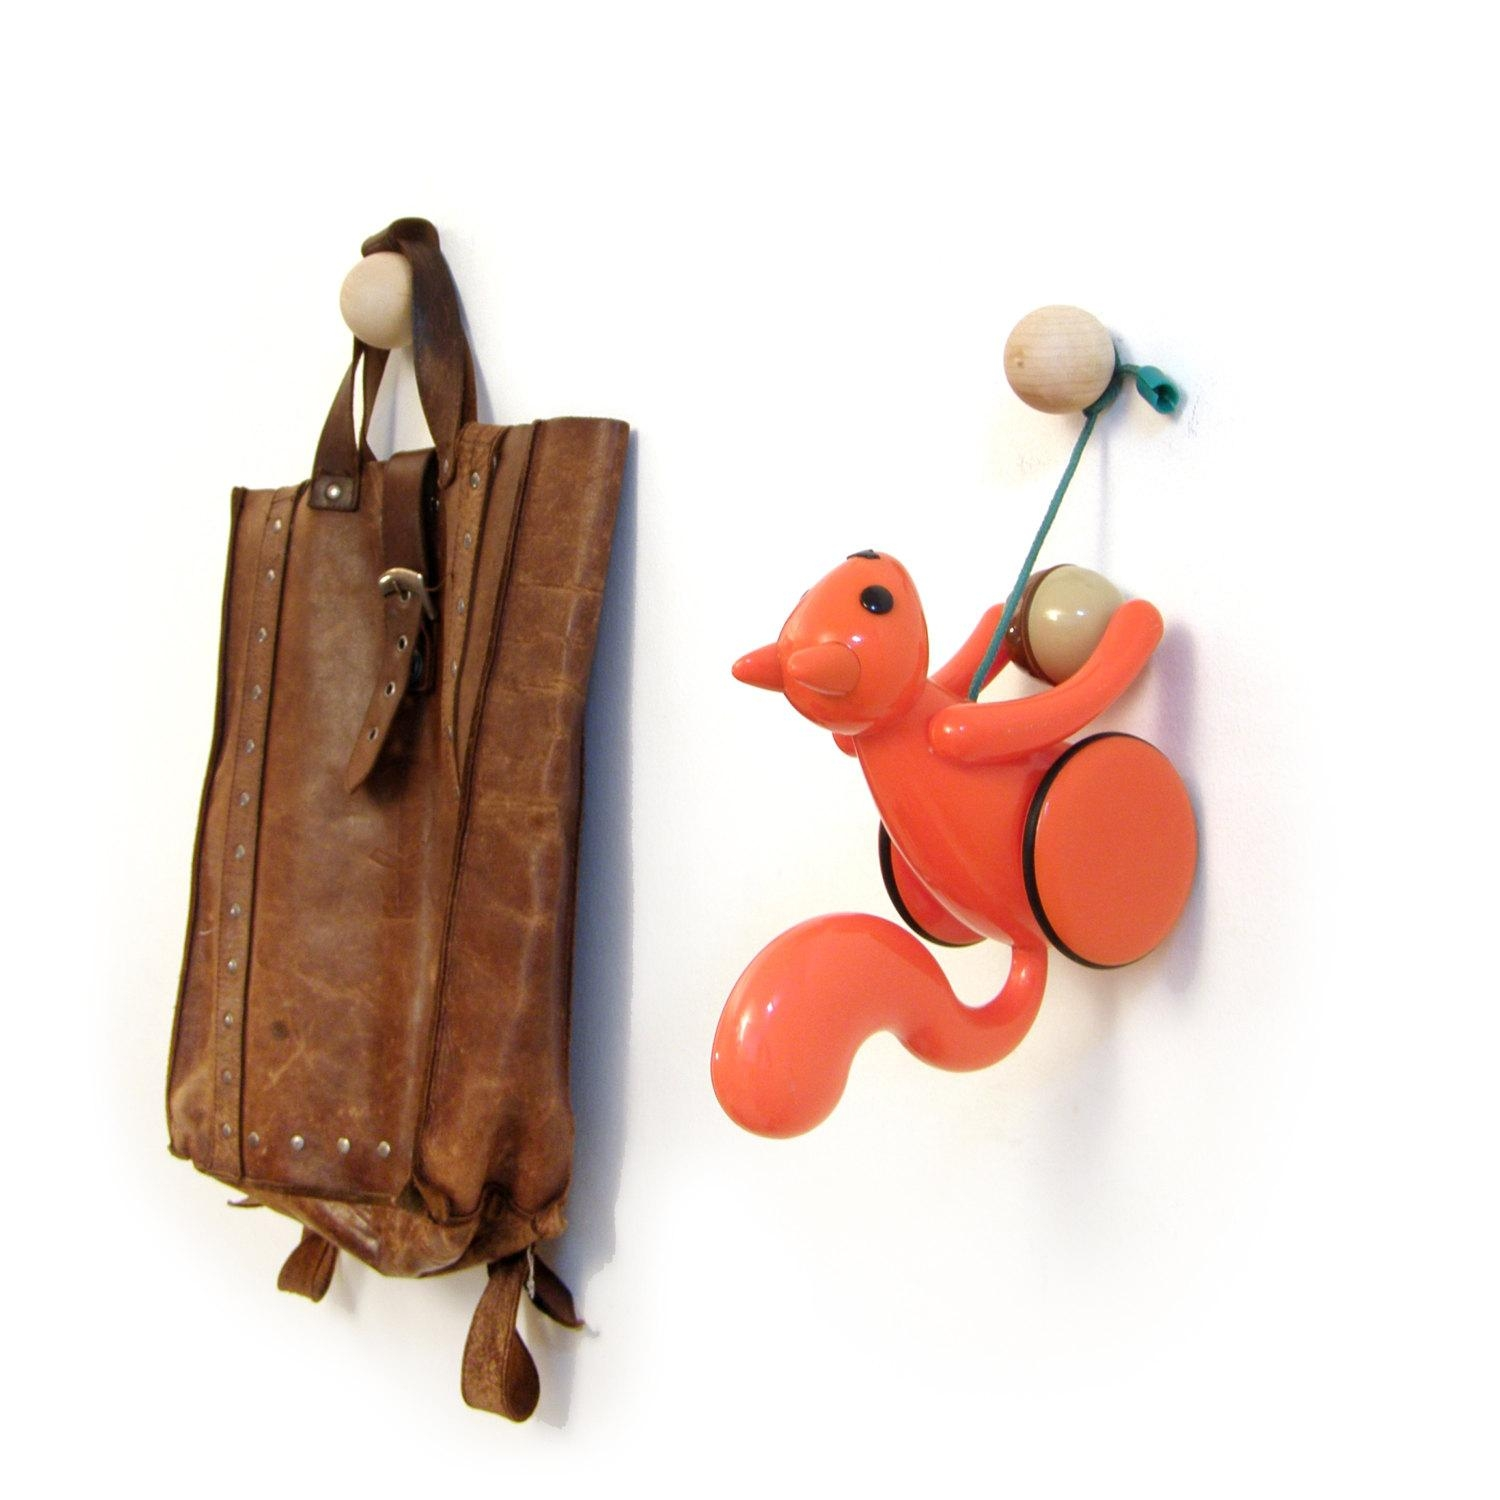 Wall Mounted Coat Hooks Walmart Com Browse Related Products With Regard To Wall Art Coat Hooks (View 12 of 20)